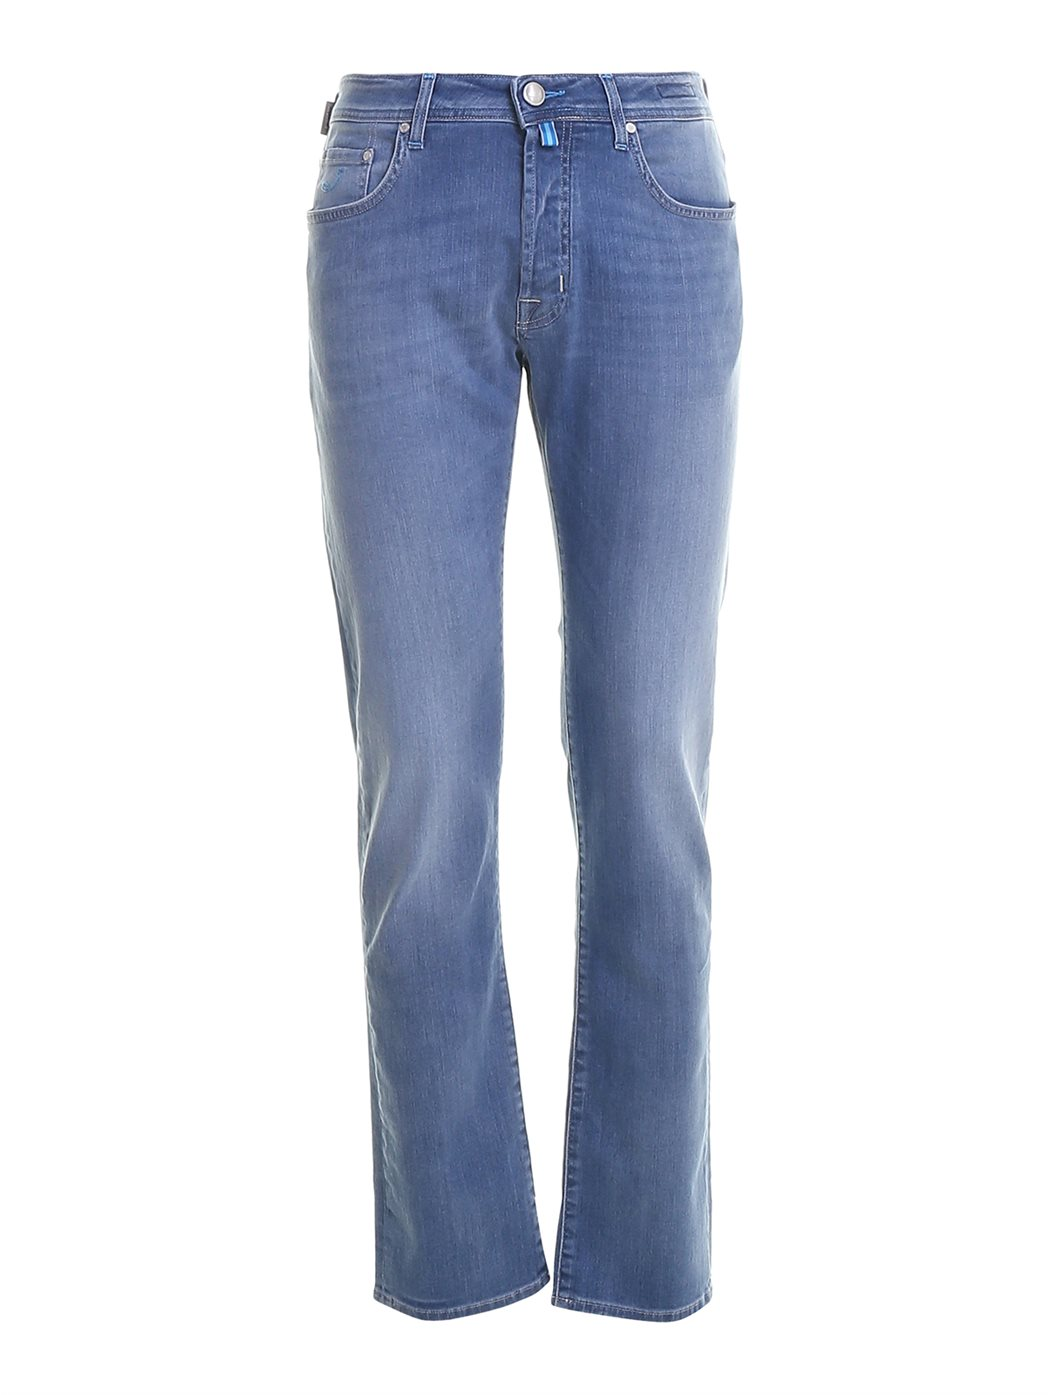 JACOB COHEN J688 3 JEANS